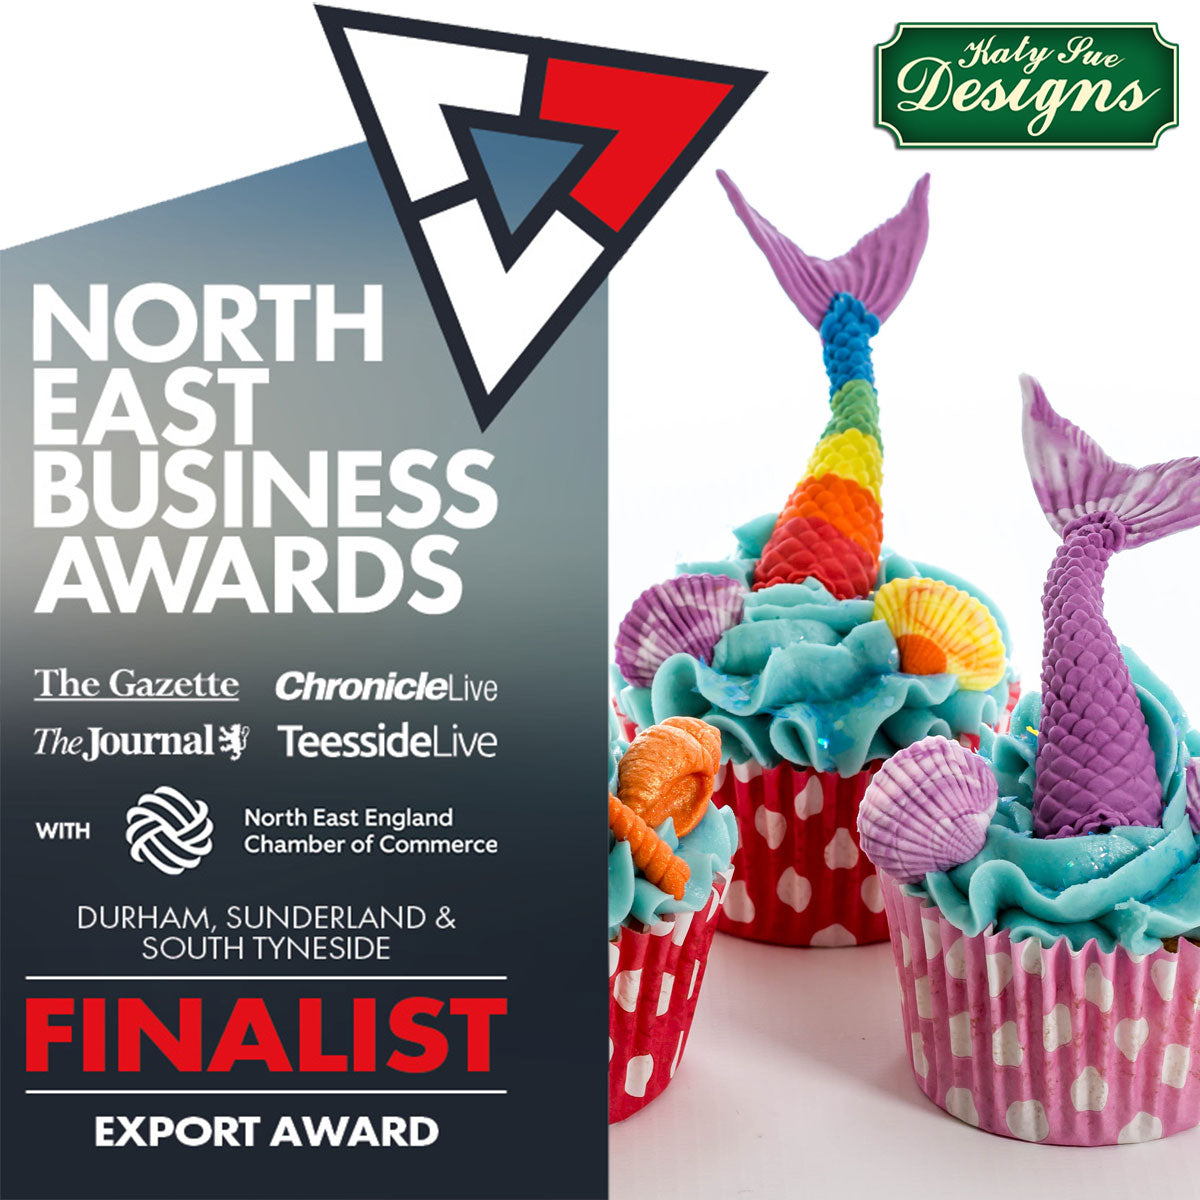 Cake Moulds Business awards